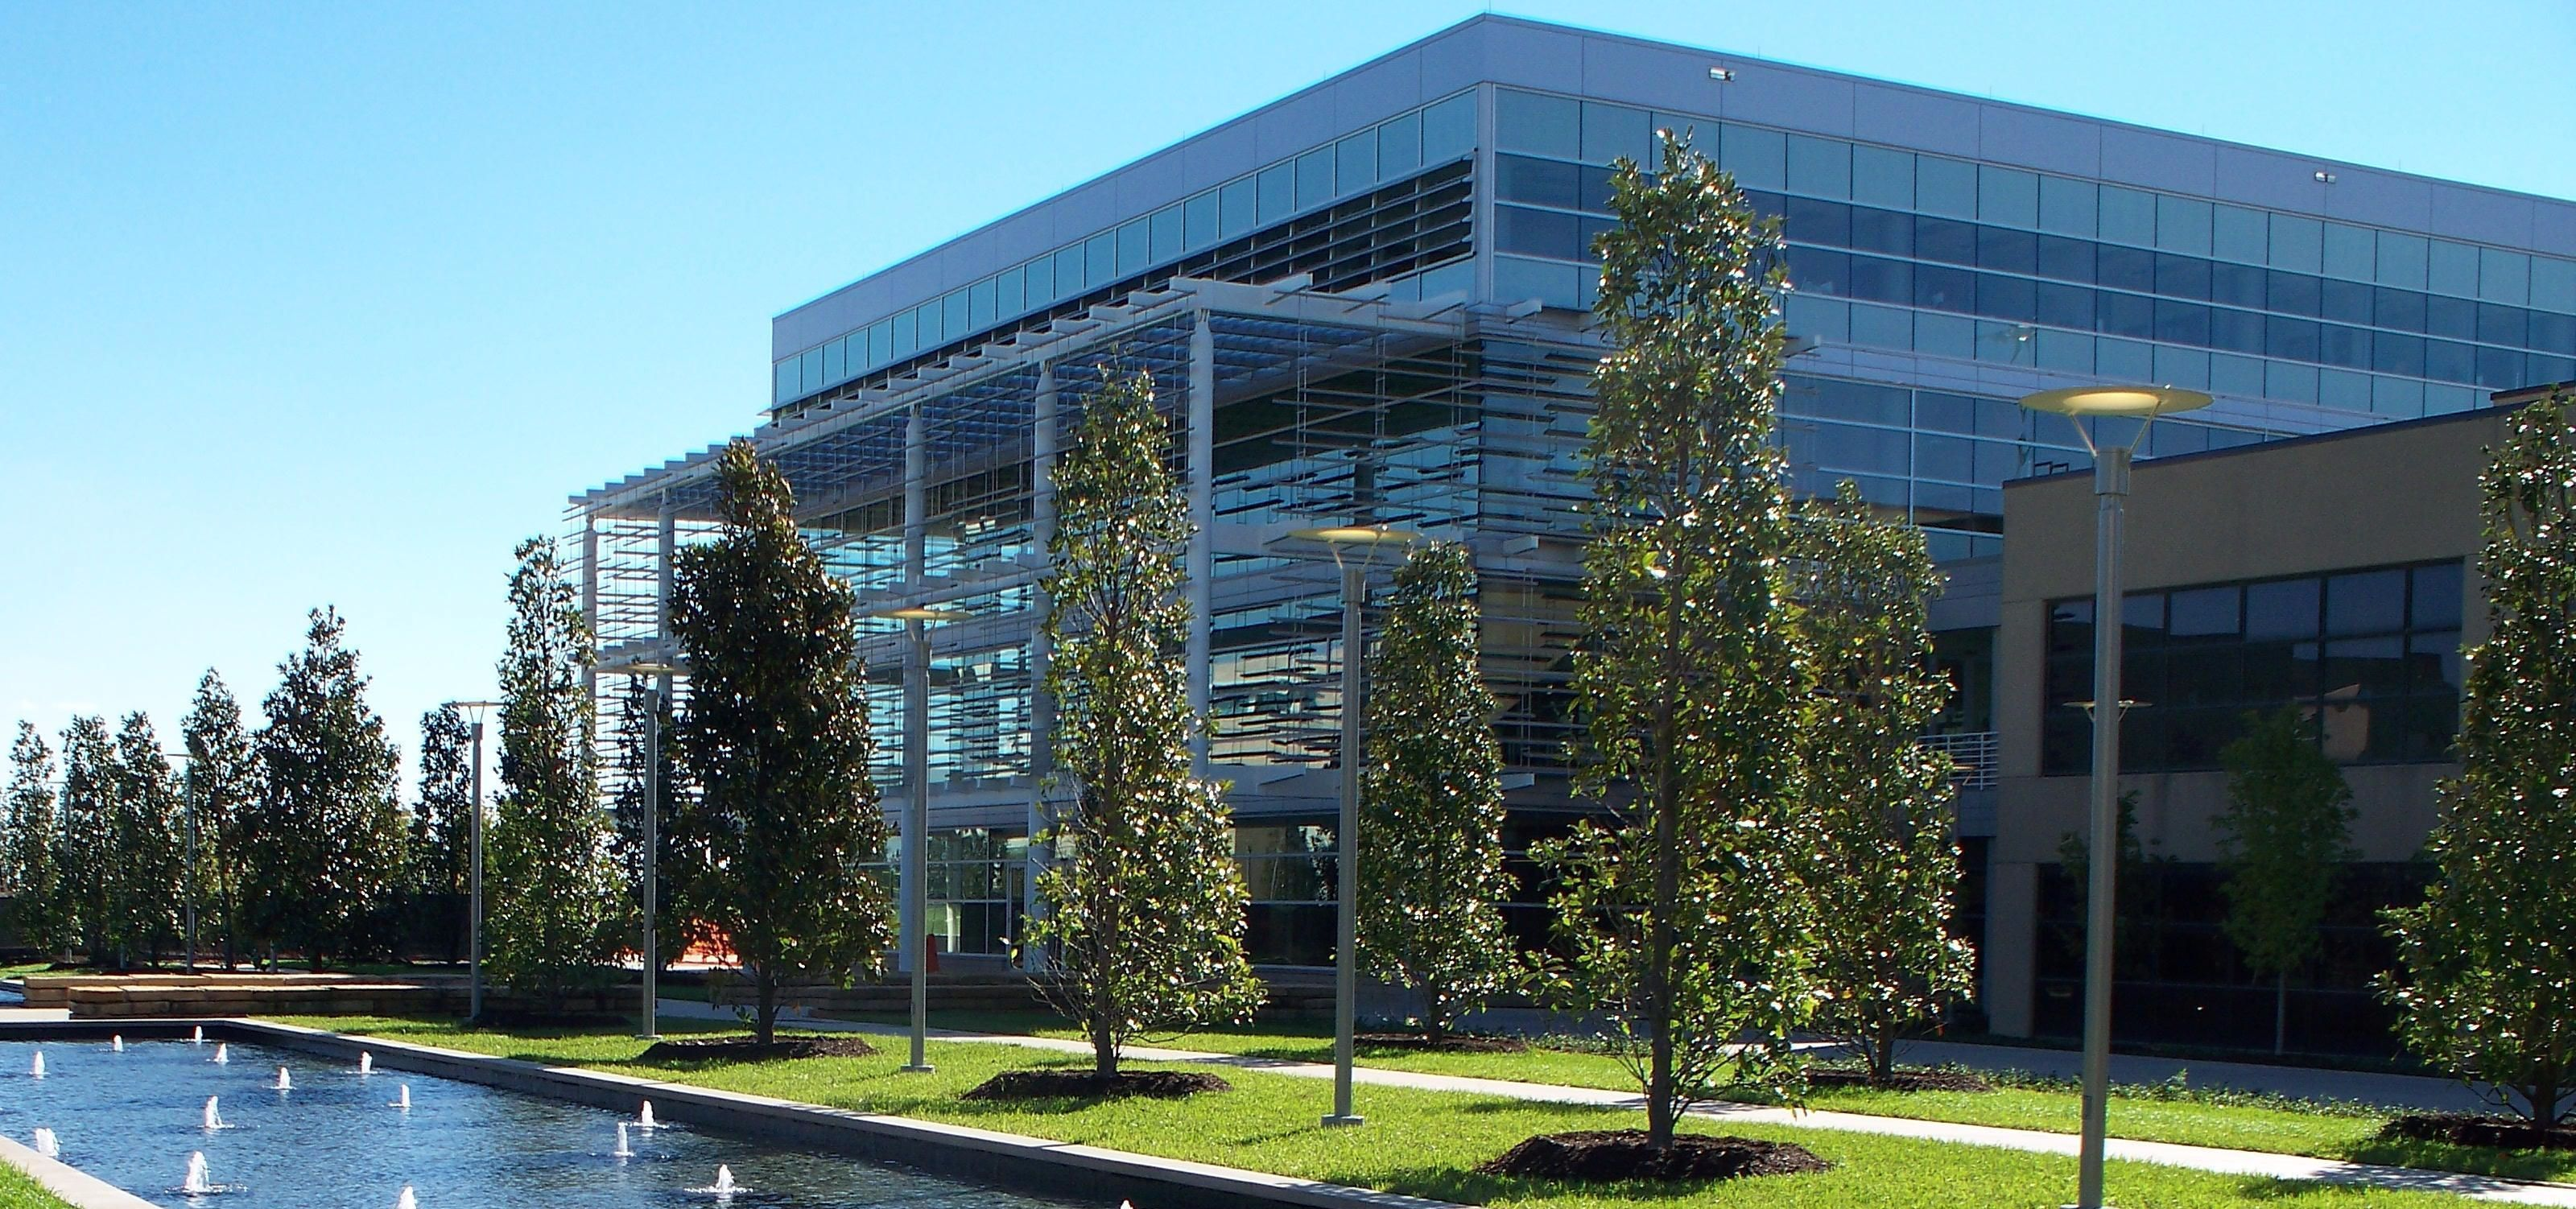 74,000-square-foot Student Services Building - the first academic structure in Texas to be rated a LEED Platinum facility by the United States Green Building Council.